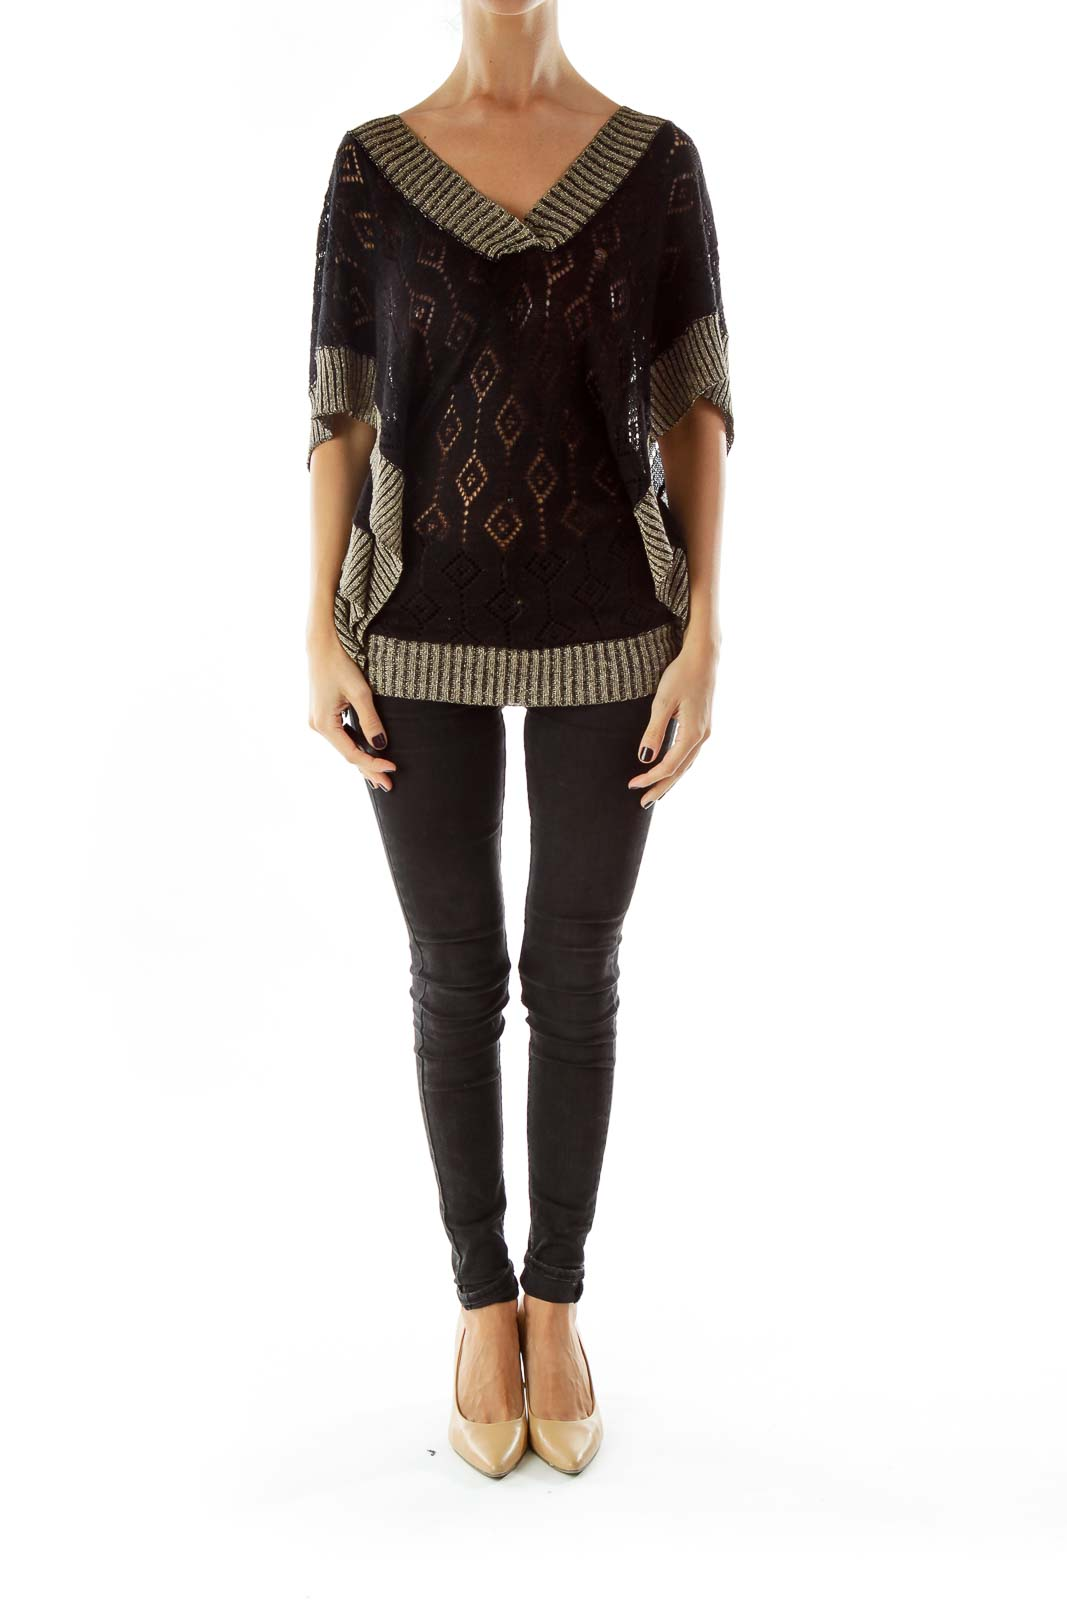 Black Gold Shimmer V-Neck Knit Top